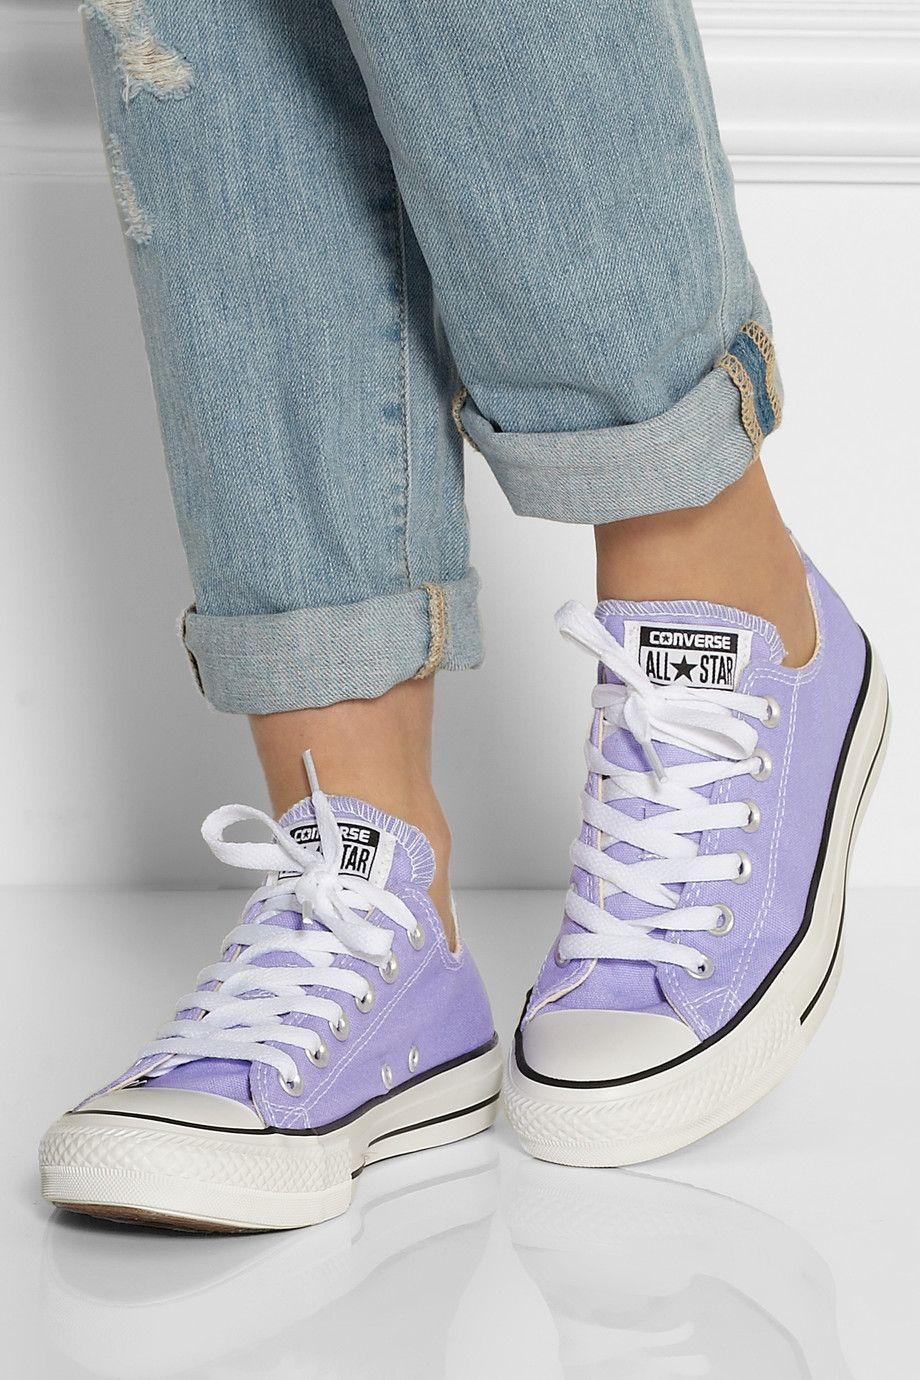 Lavender Chuck Taylor All Star Canvas Sneakers Converse Converse Shoes Outfits With Converse Converse